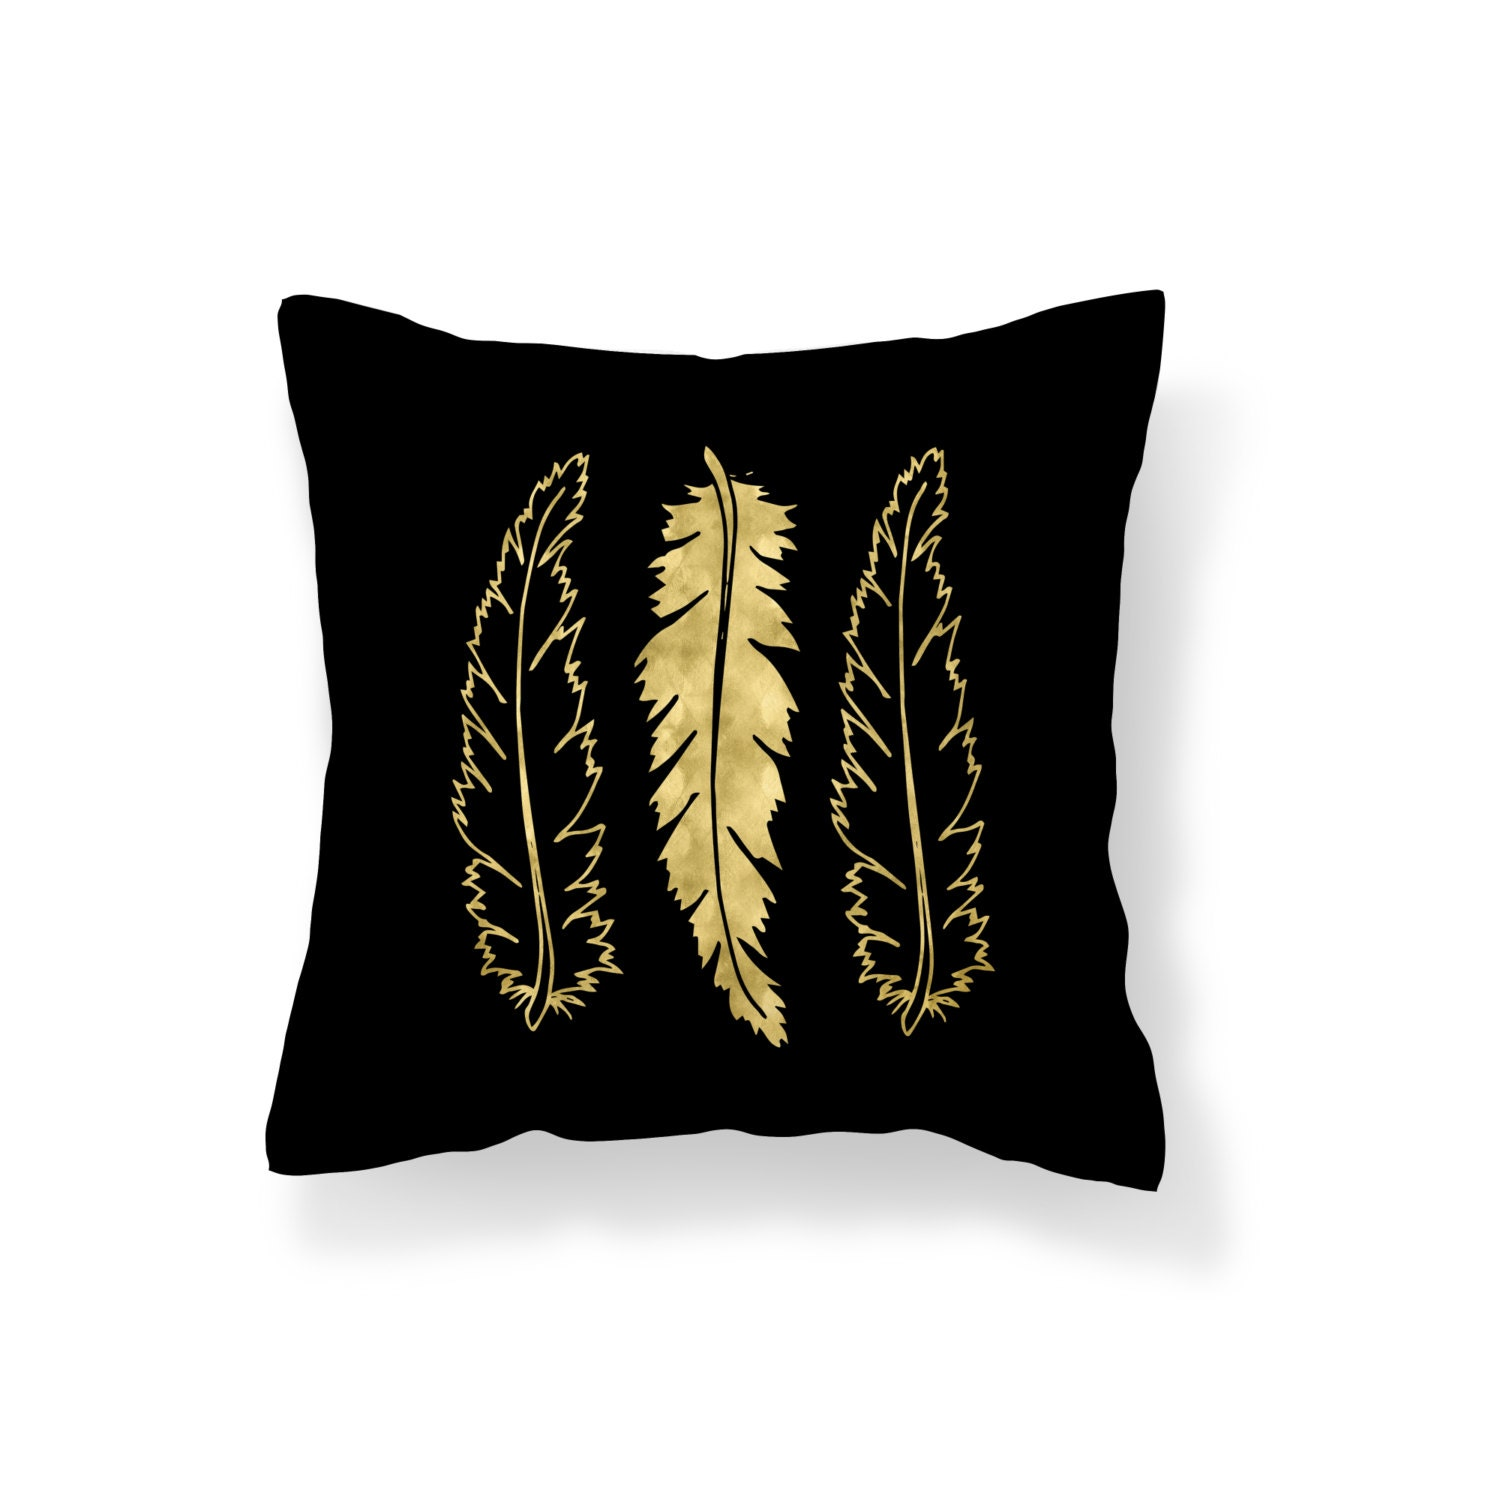 Decorative Pillows Feather : Throw Pillow Feather Decroative Pillow Feather Pillow black